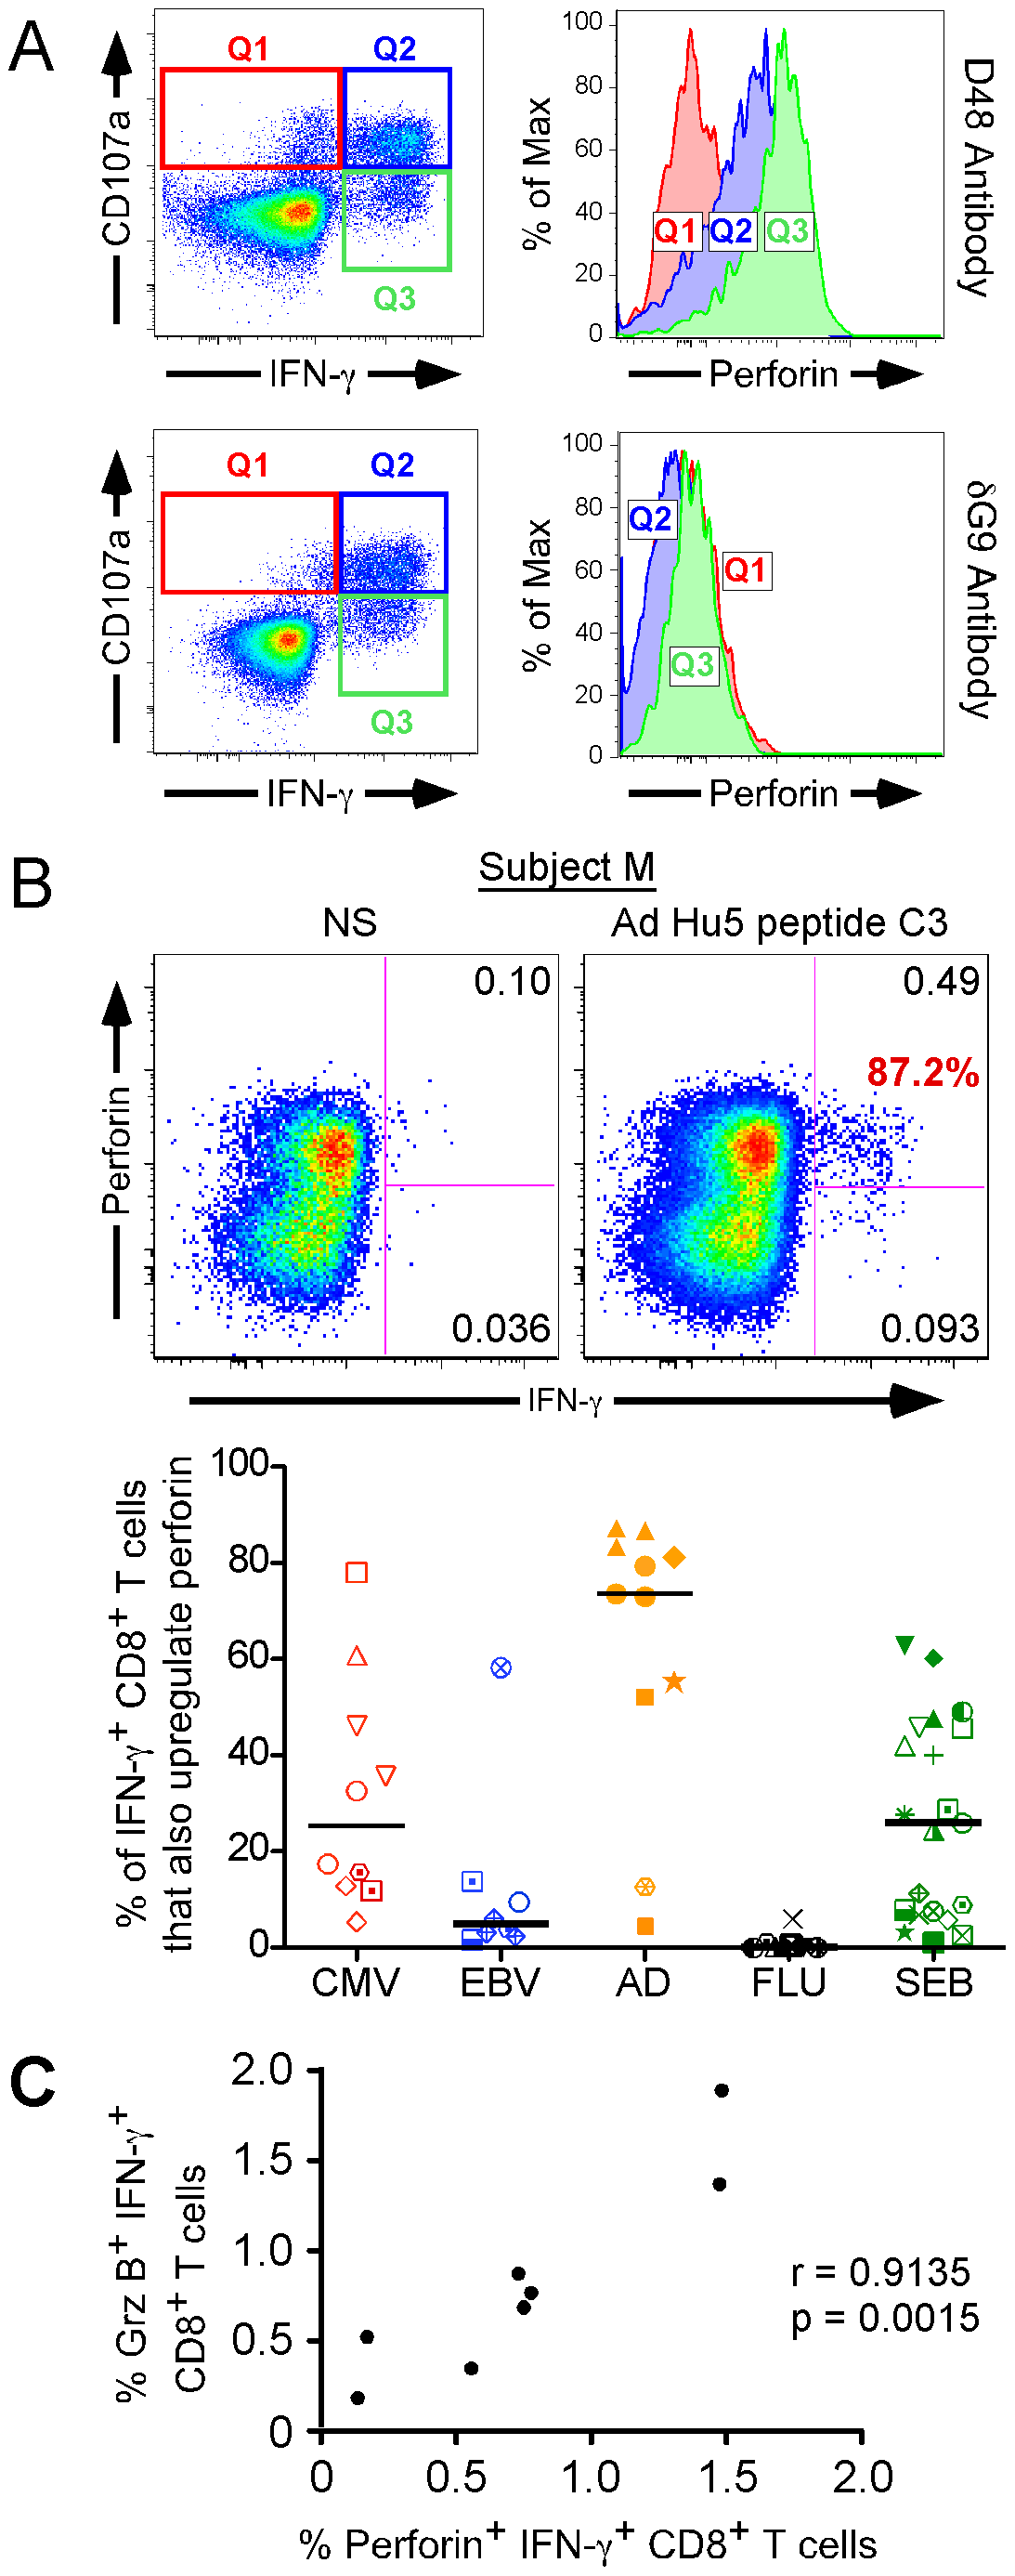 Perforin upregulation by CD8<sup>+</sup> T cells after peptide-specific activation.